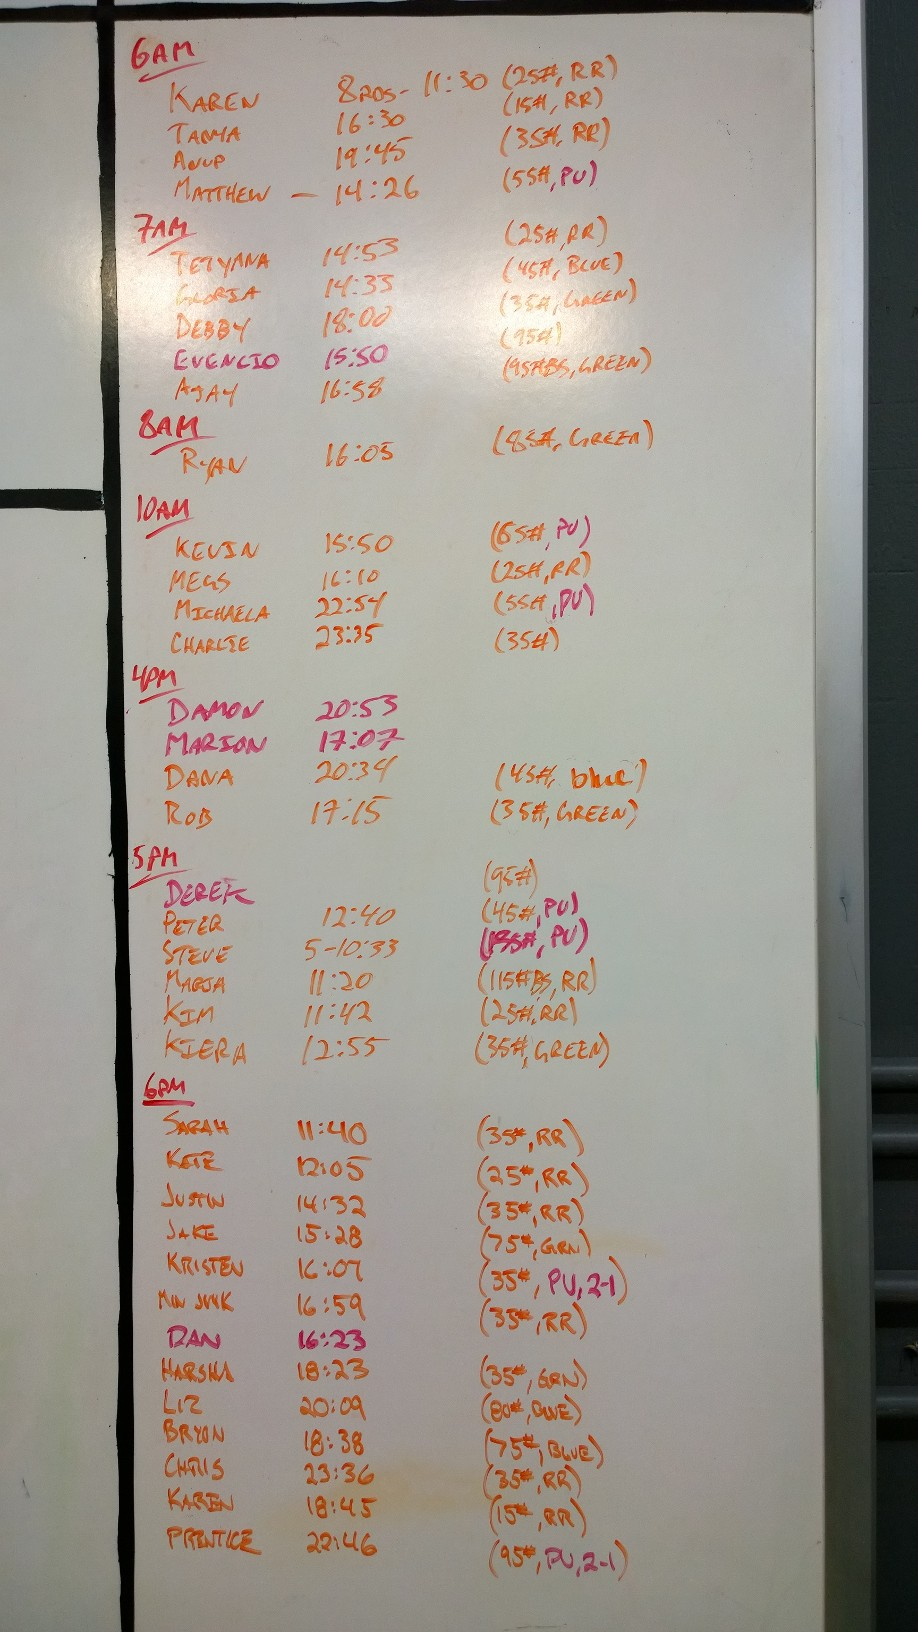 June 17 WOD Results